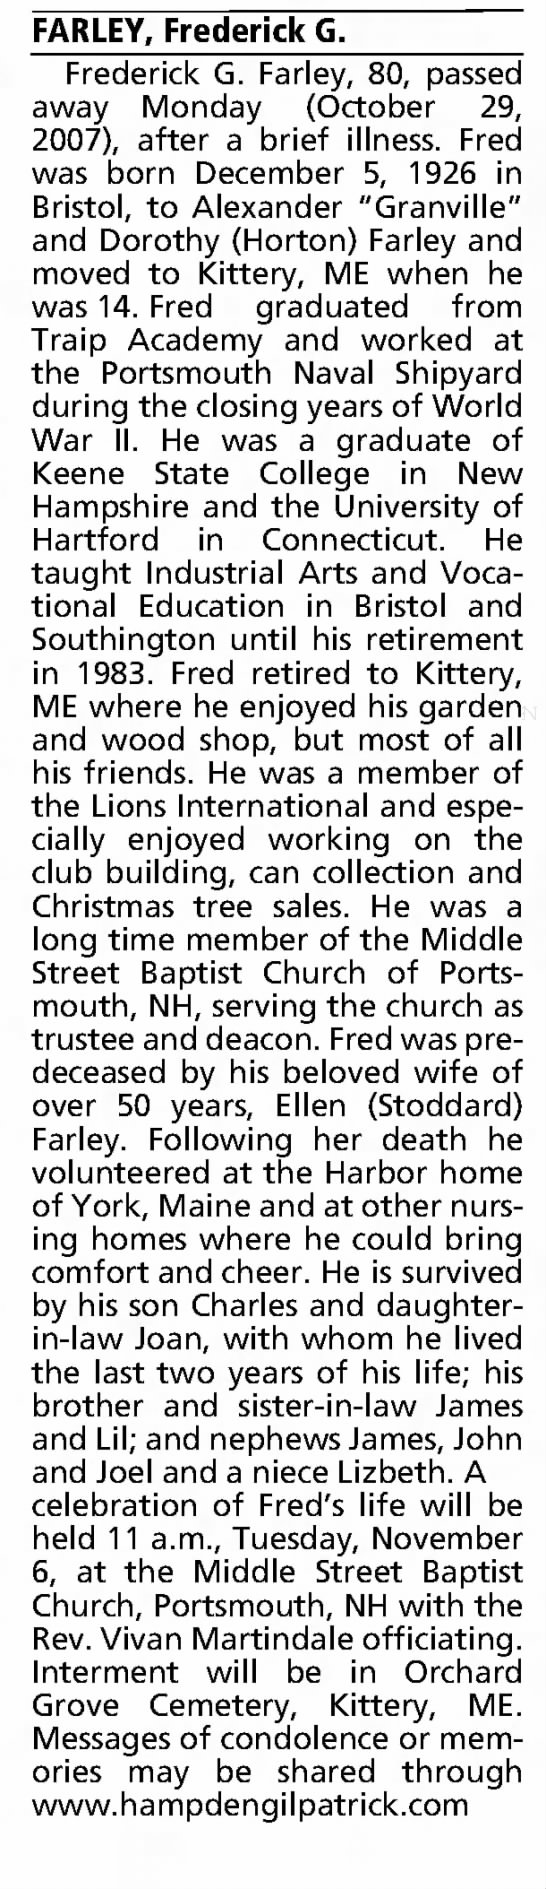 Farley, Frederick G - Obituary - Hartford Courant Hartford, Connecticut  Wednesday, October 31, 2007 - FARLEY, Frederick G. Frederick G. Farley, 80,...